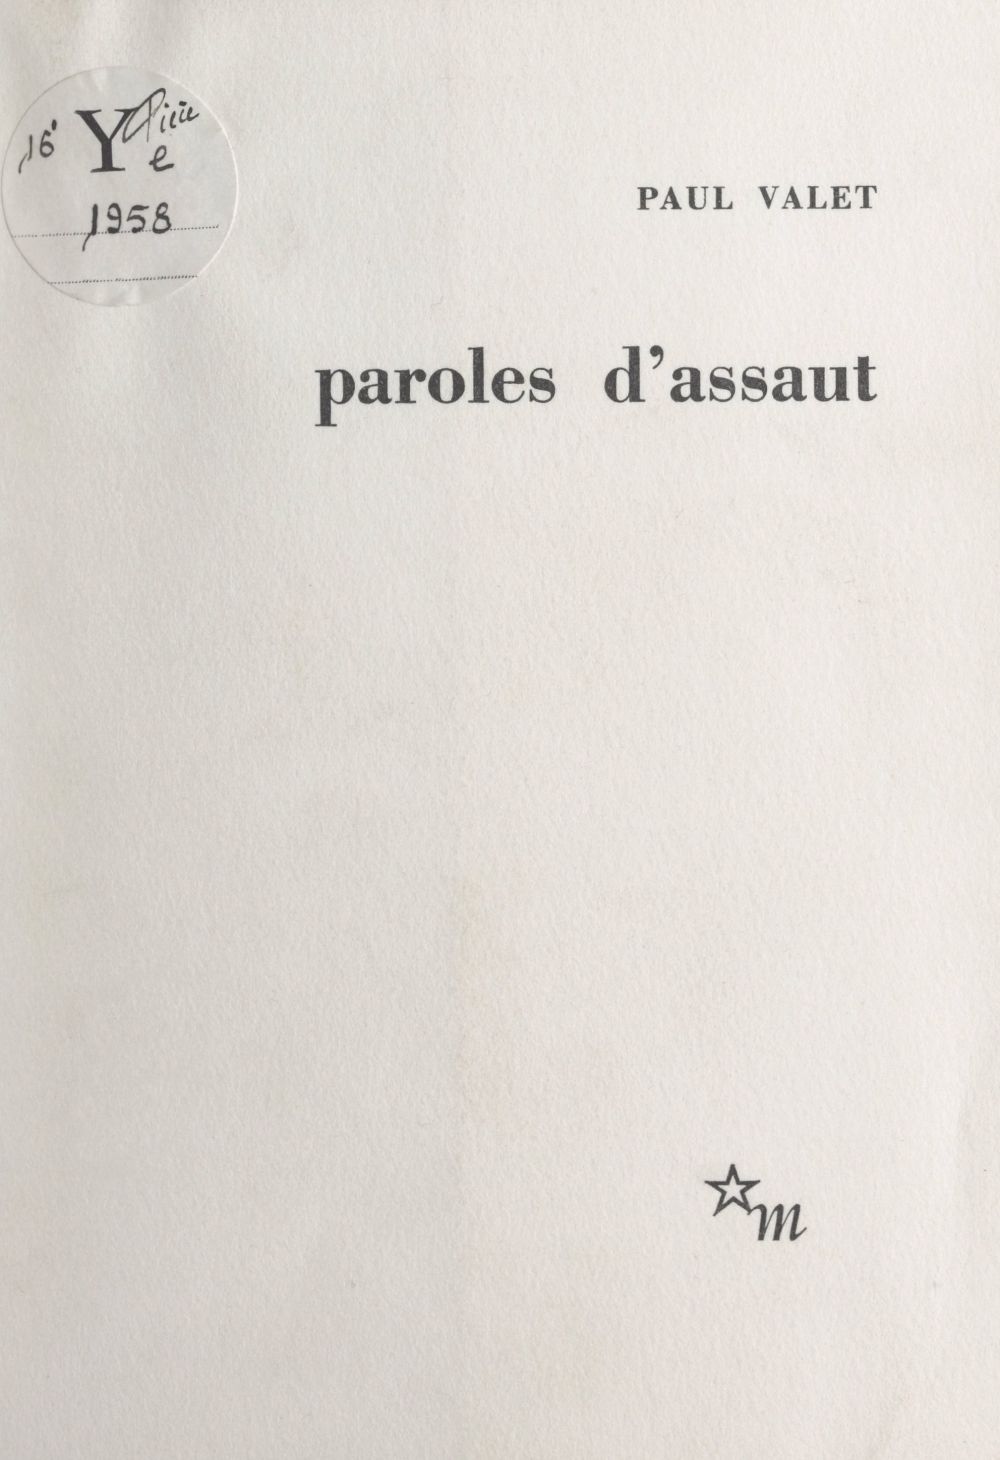 Paroles d'assaut